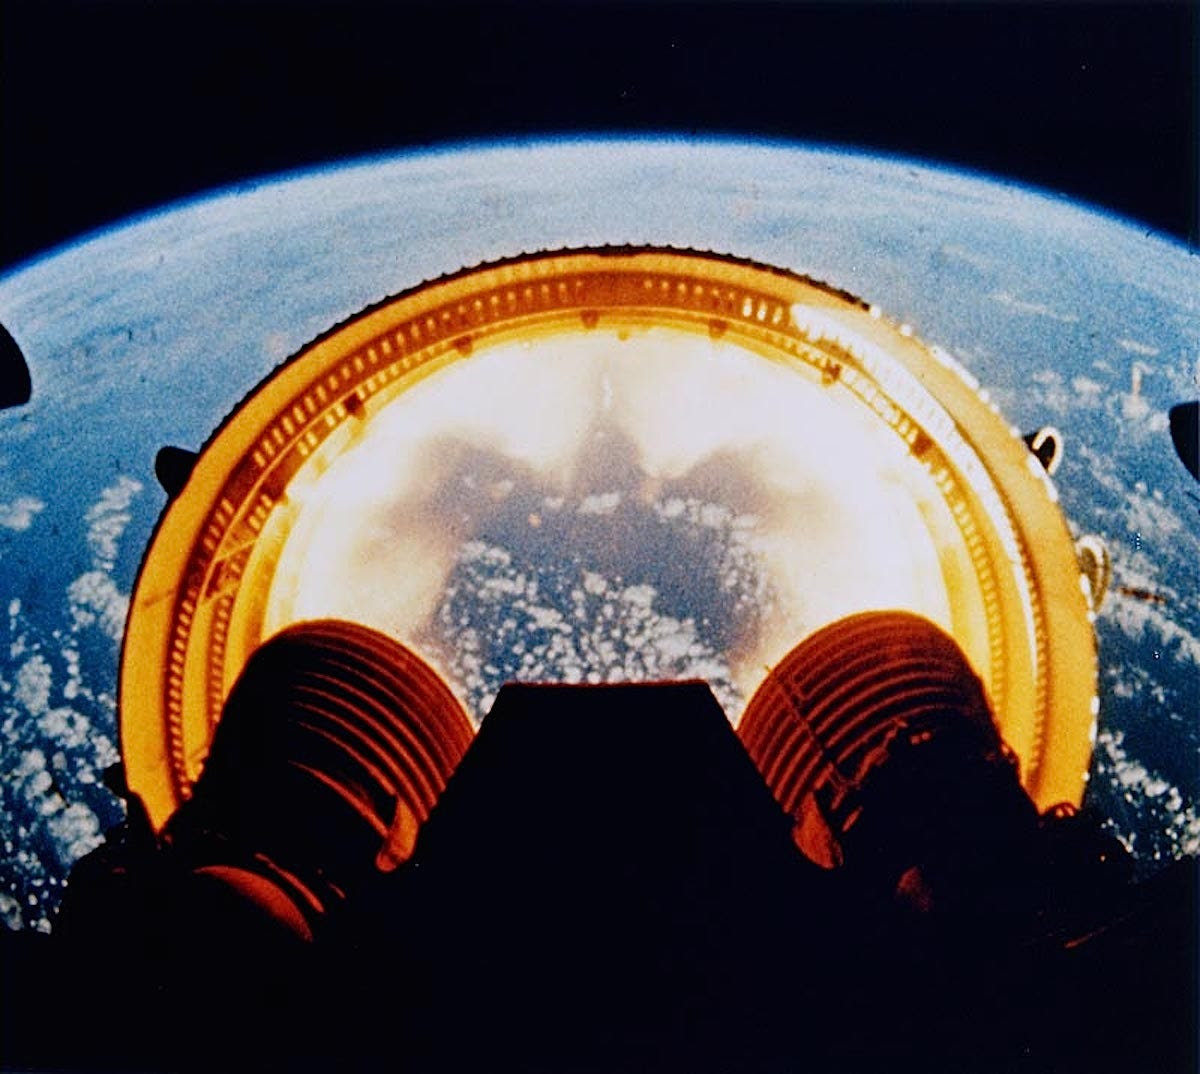 These engines burned for a total of six minutes, propelling the remaining rocket stages to an altitude of 109 miles.